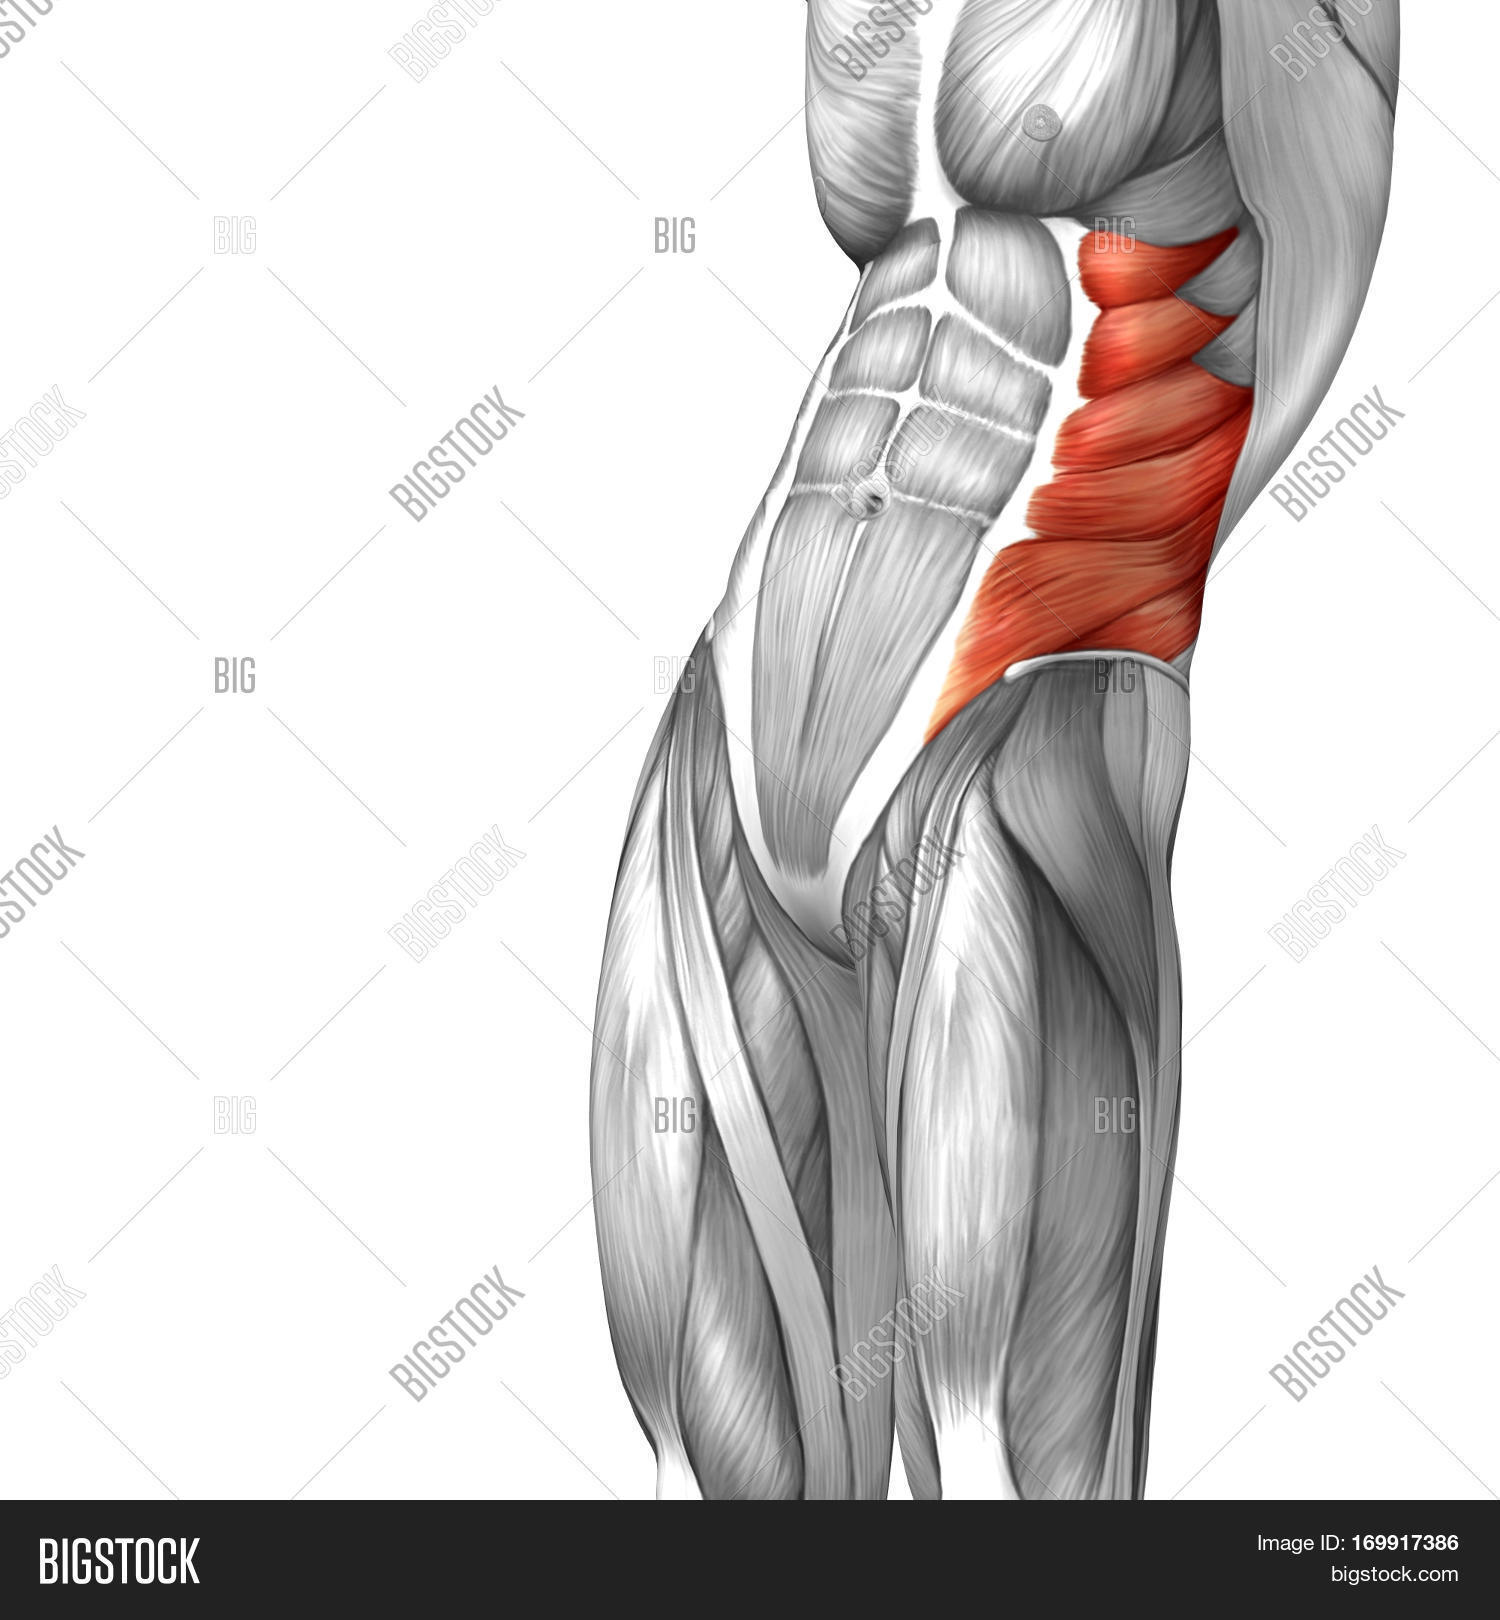 concept conceptual 3d illustration chest human anatomy or anatomical and  muscle isolated on white background metaphor